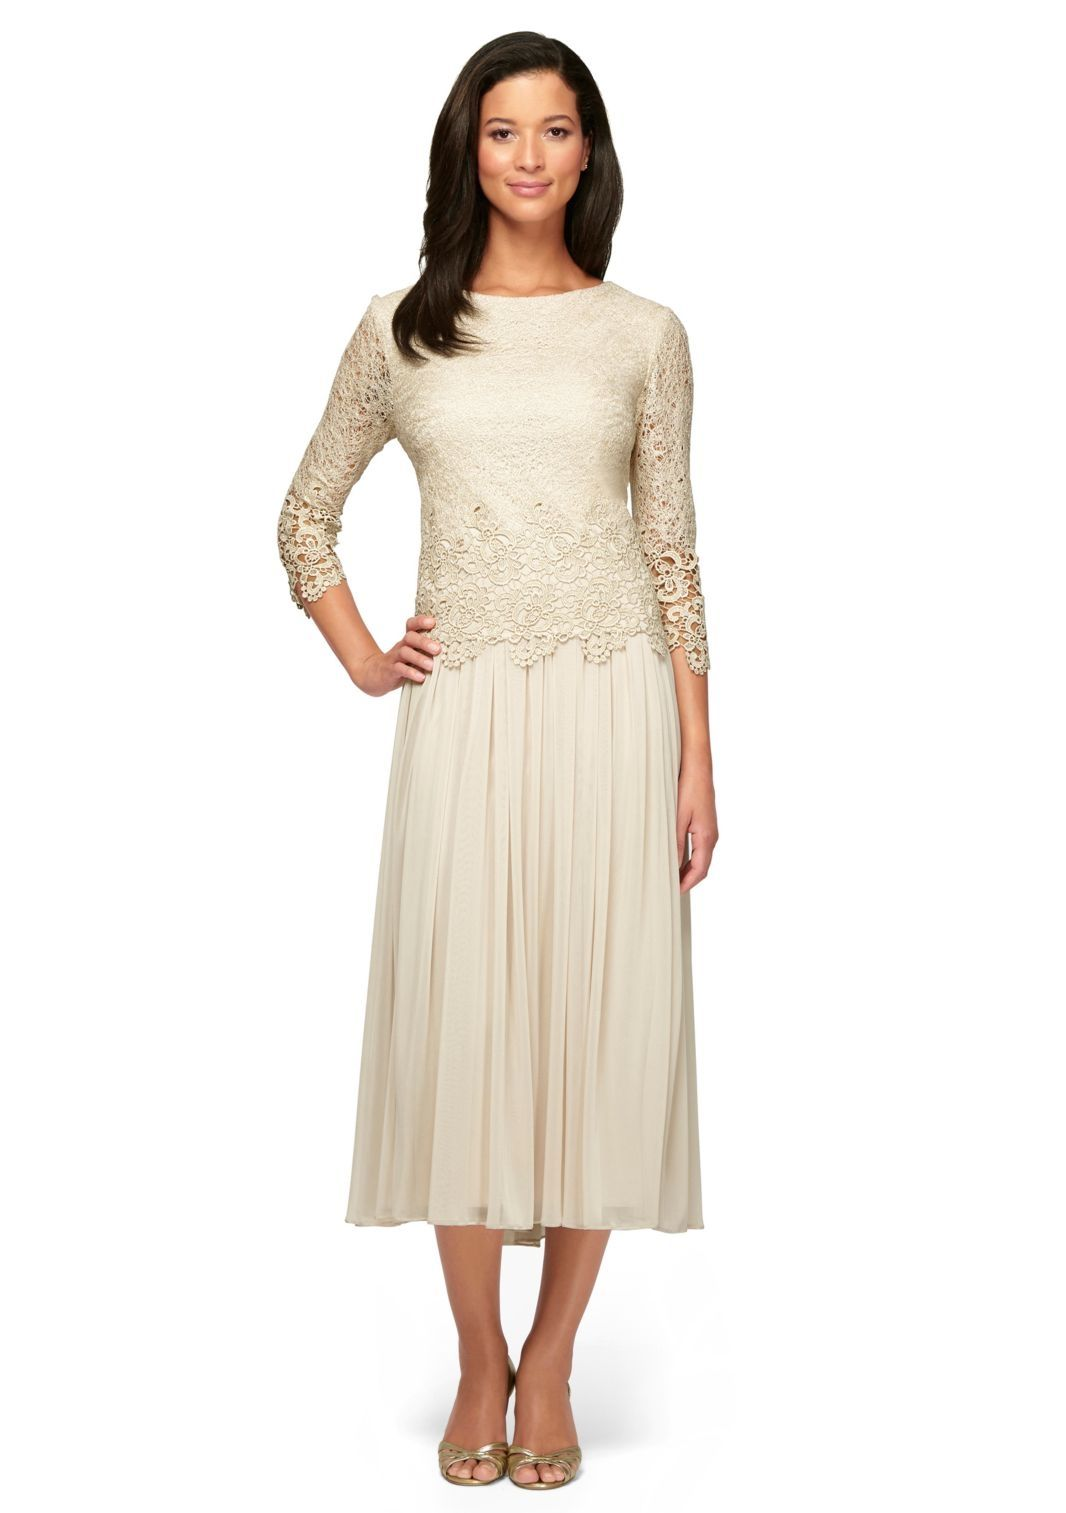 de3487aa7f1 Alex Evenings 117219 Stretch Tulle T-length Mock 2 pc Dress with Illusion  Sleeves and Scallop Detail